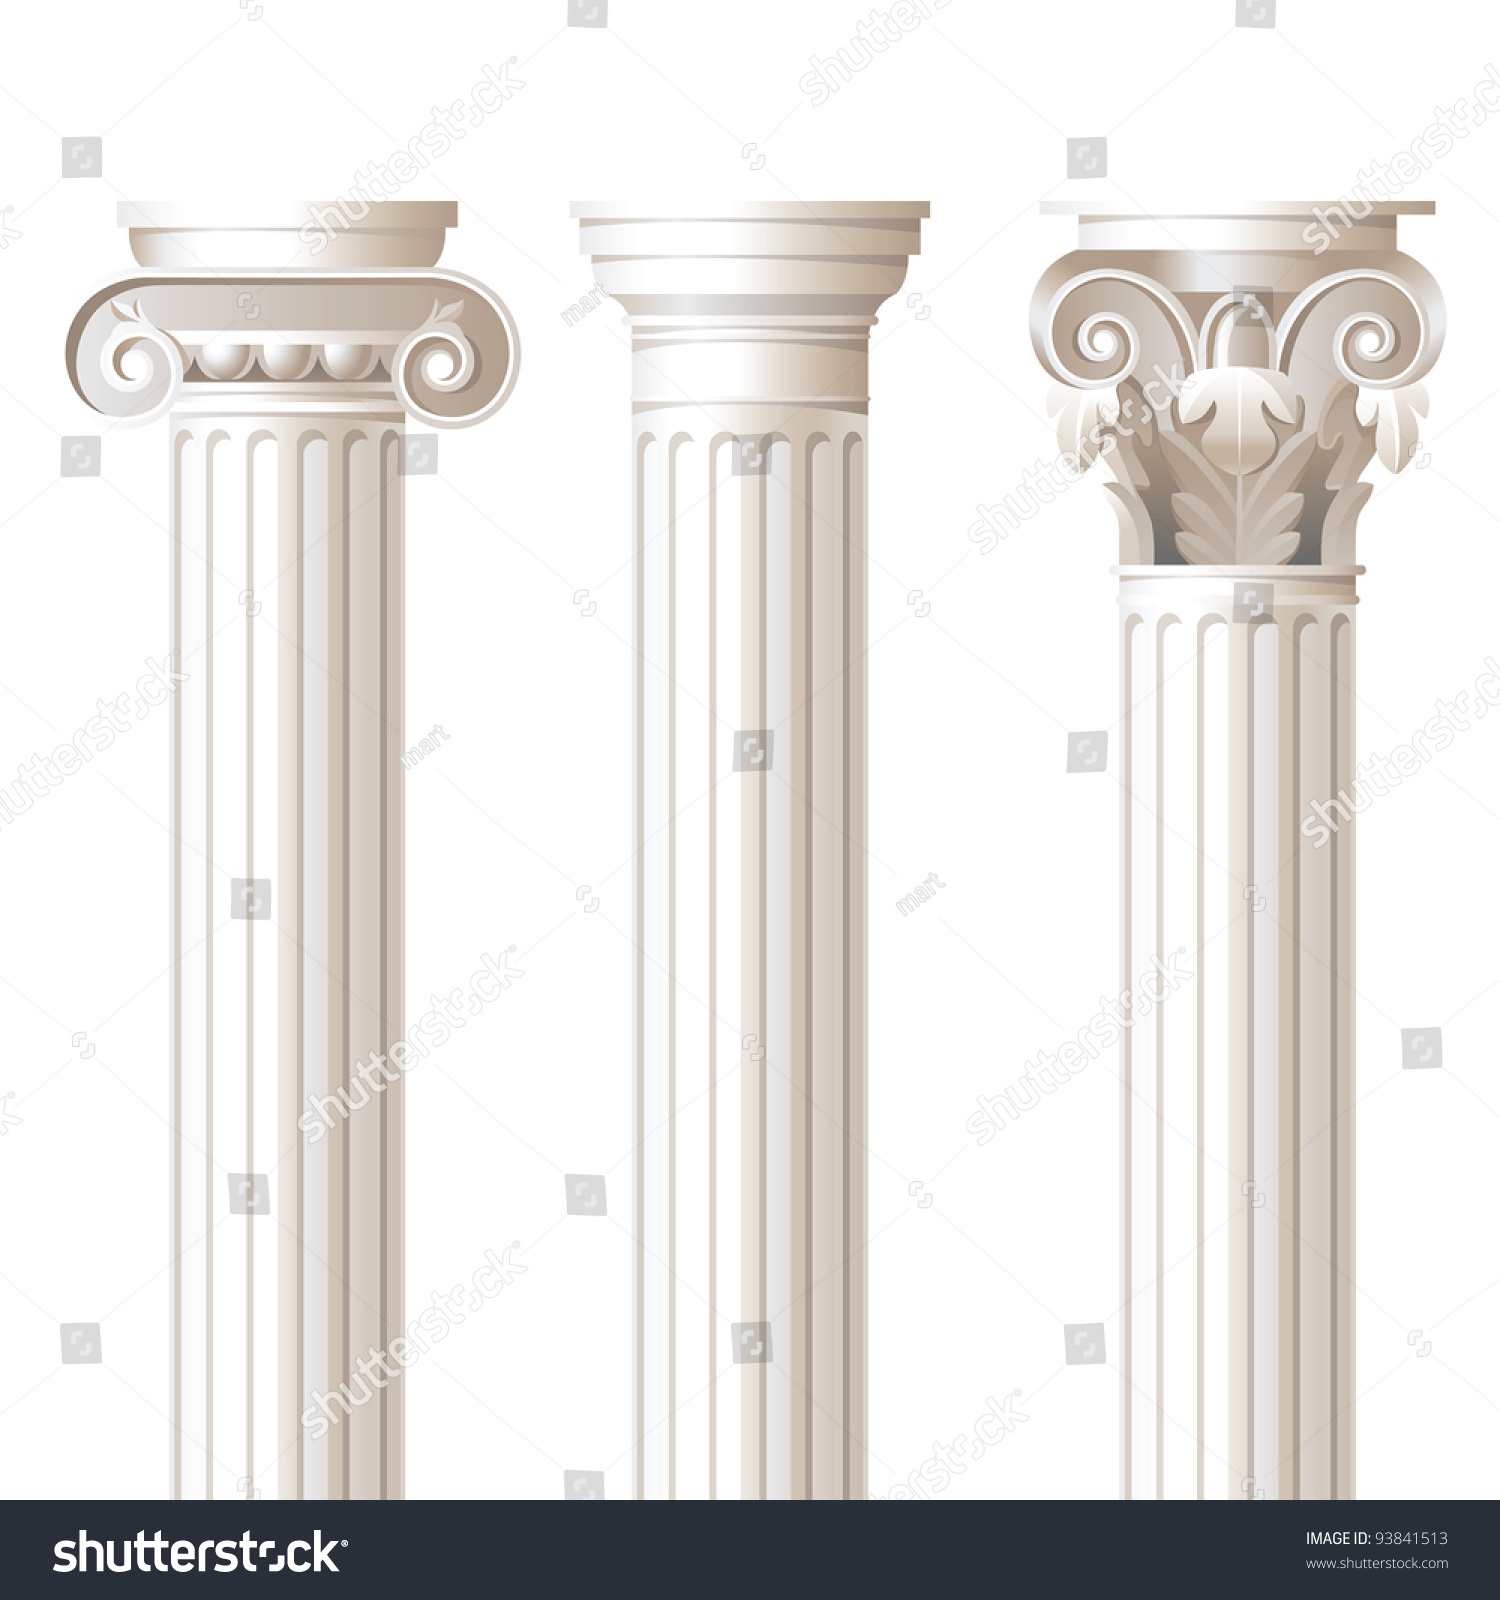 3 columns different styles ionic doric stock vector for Columns designs